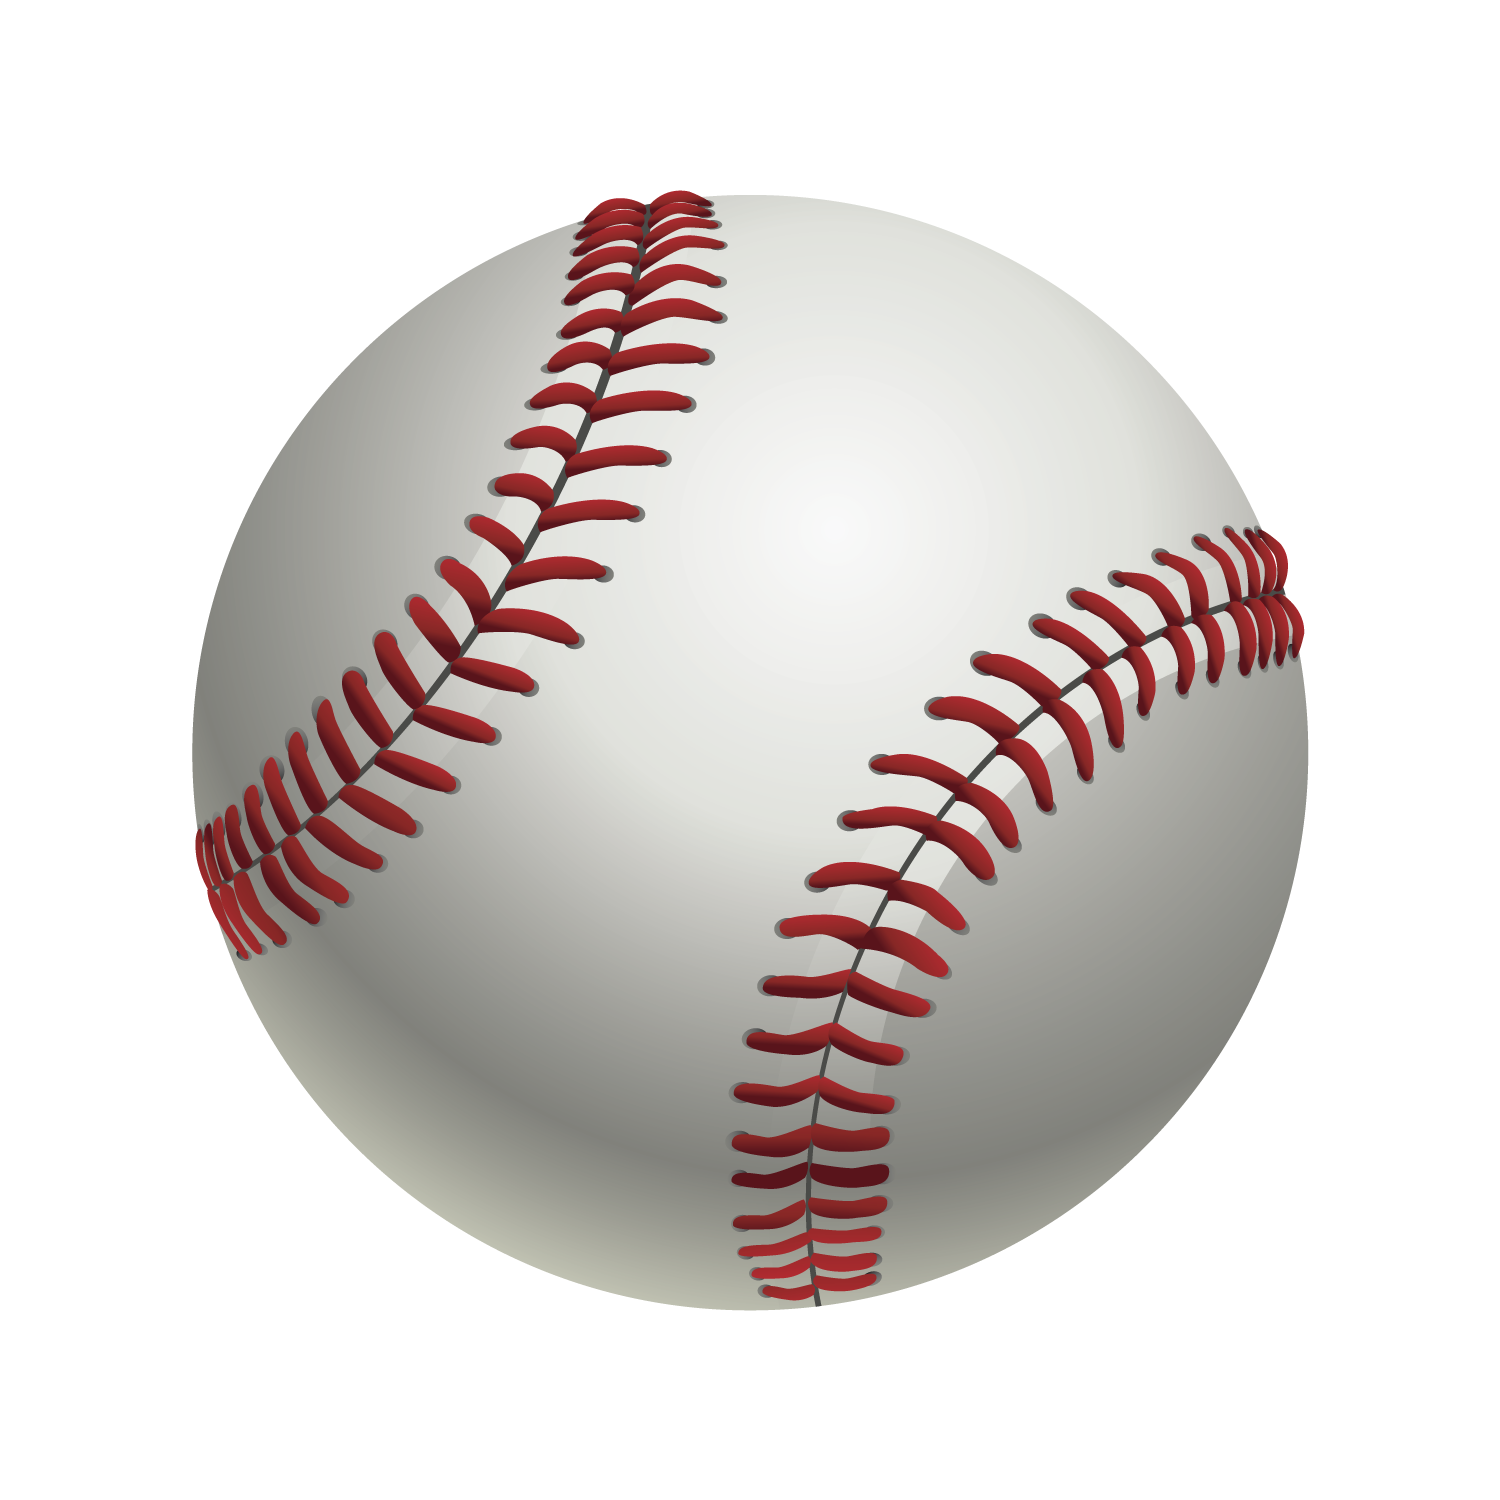 Baseball Ball Clipart.